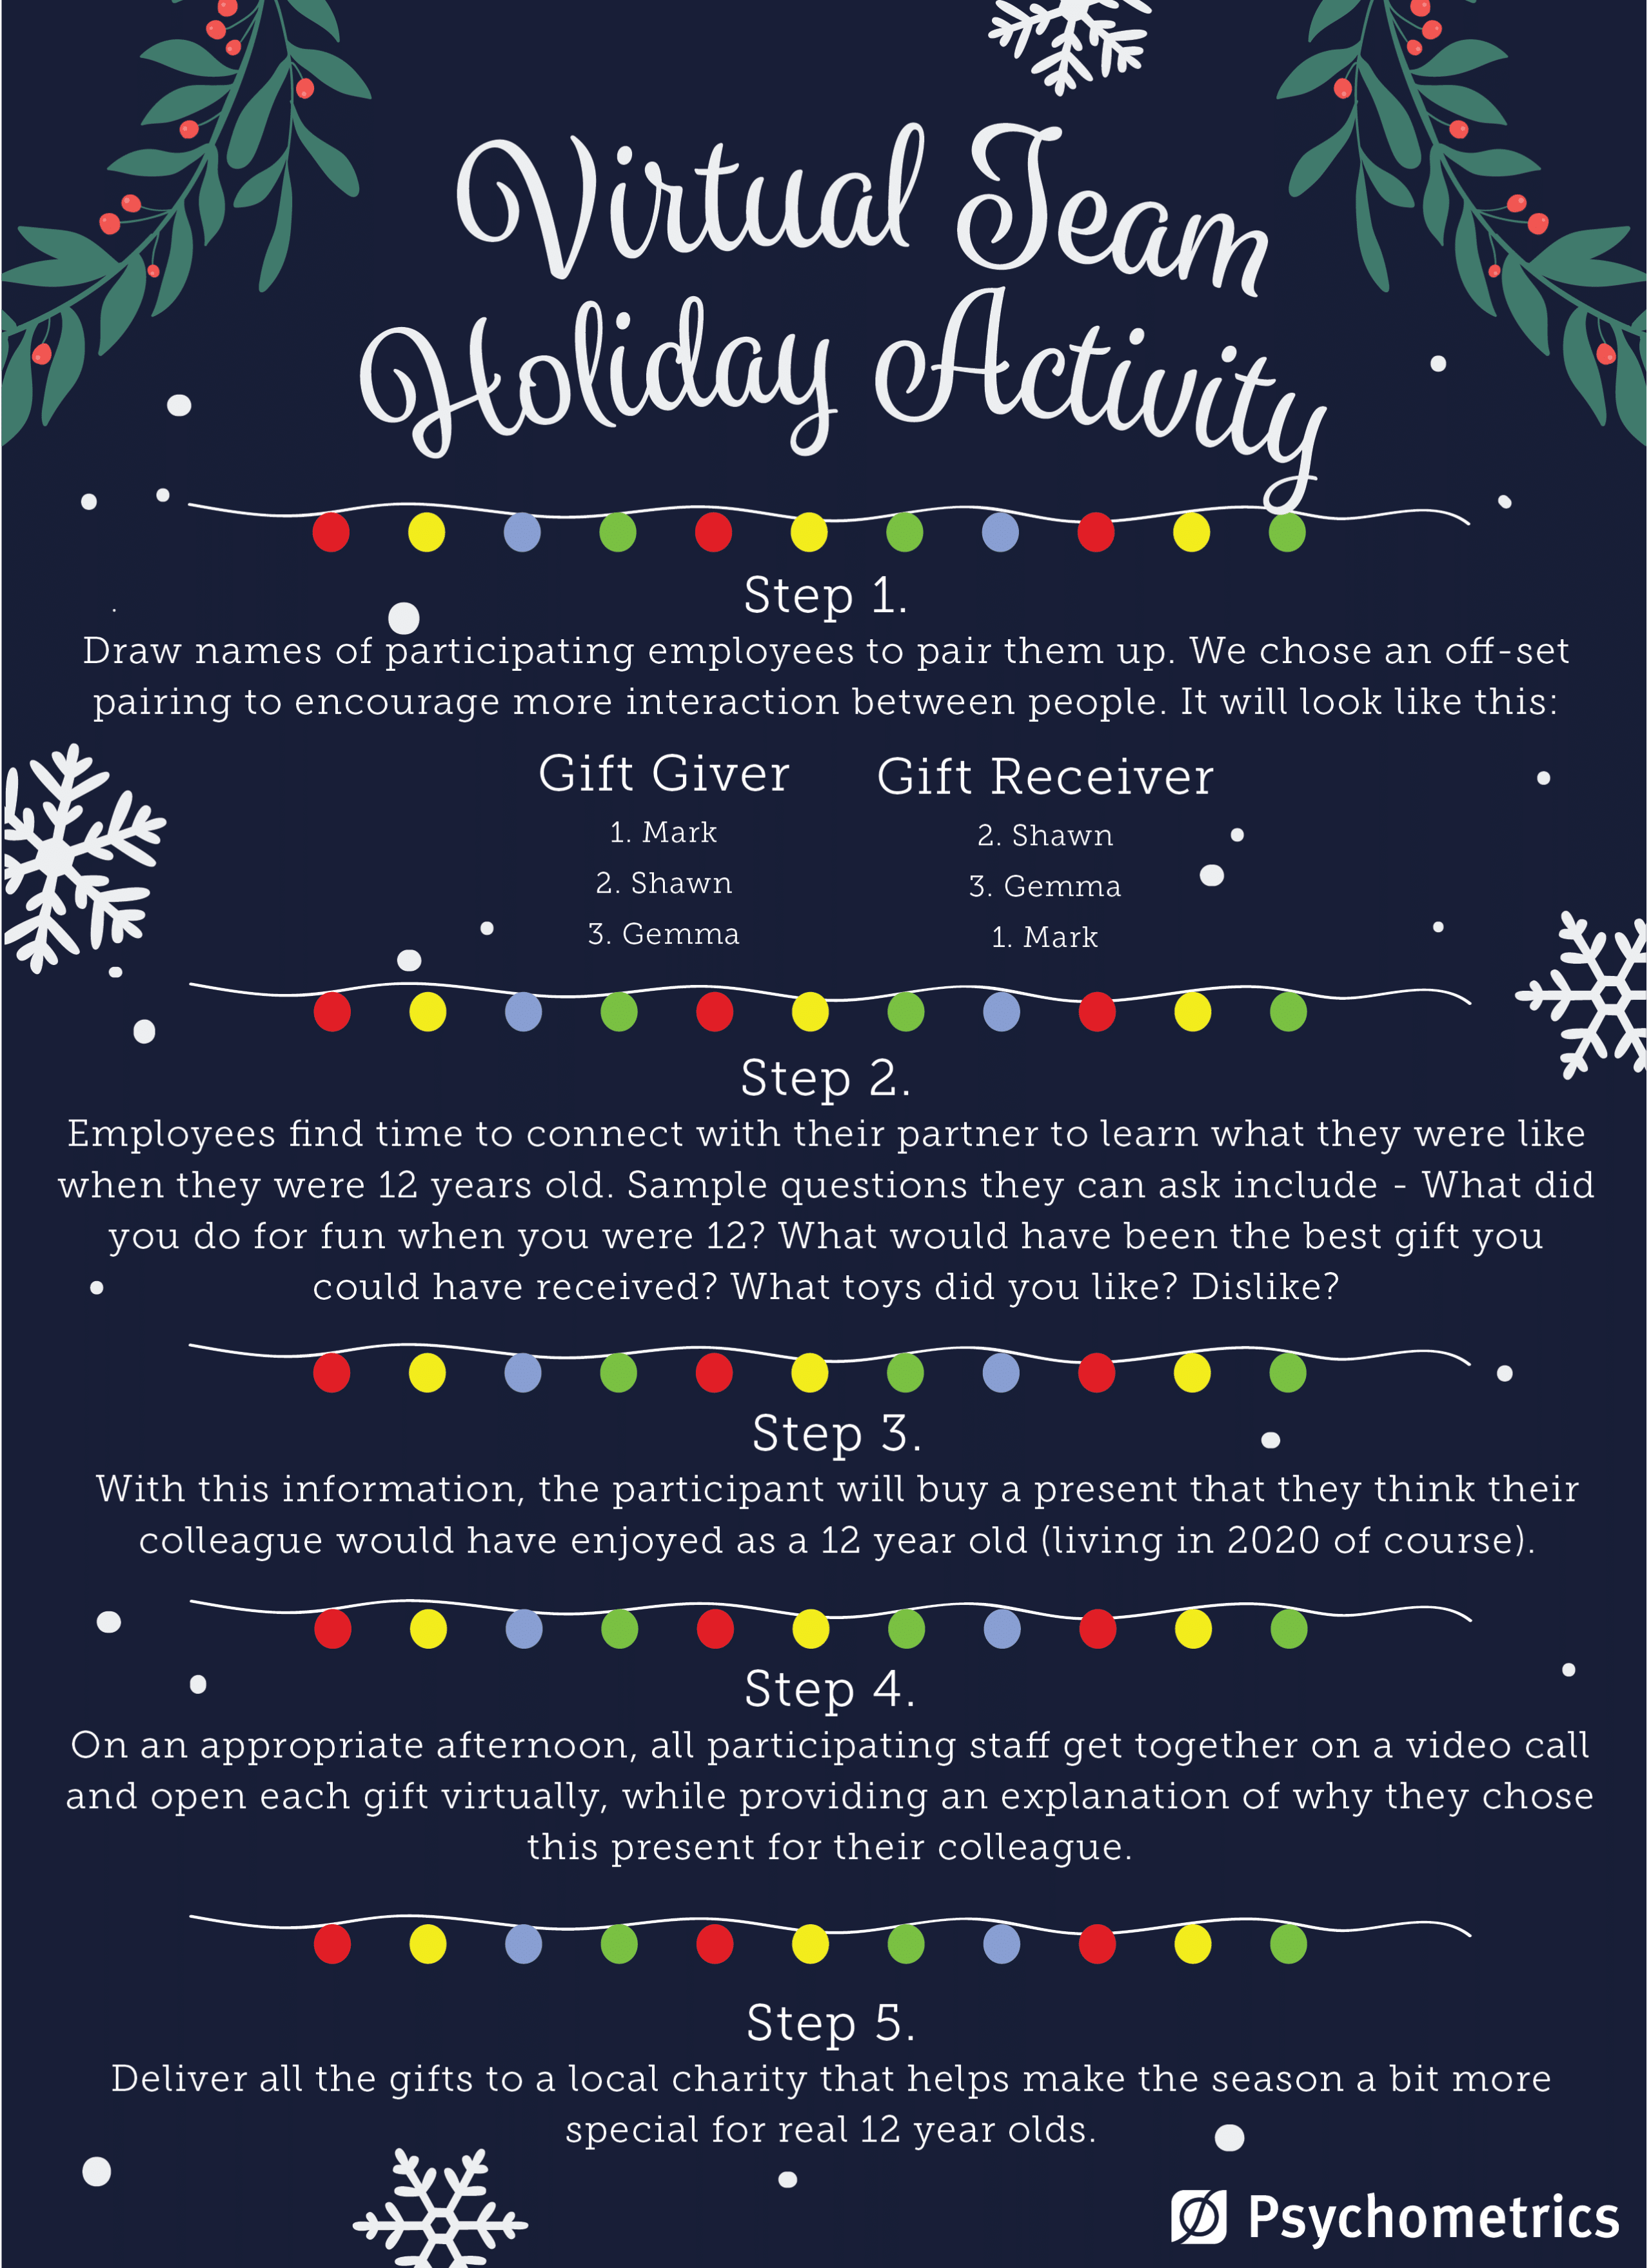 A virtual team holiday activity to engage staff and give back to community